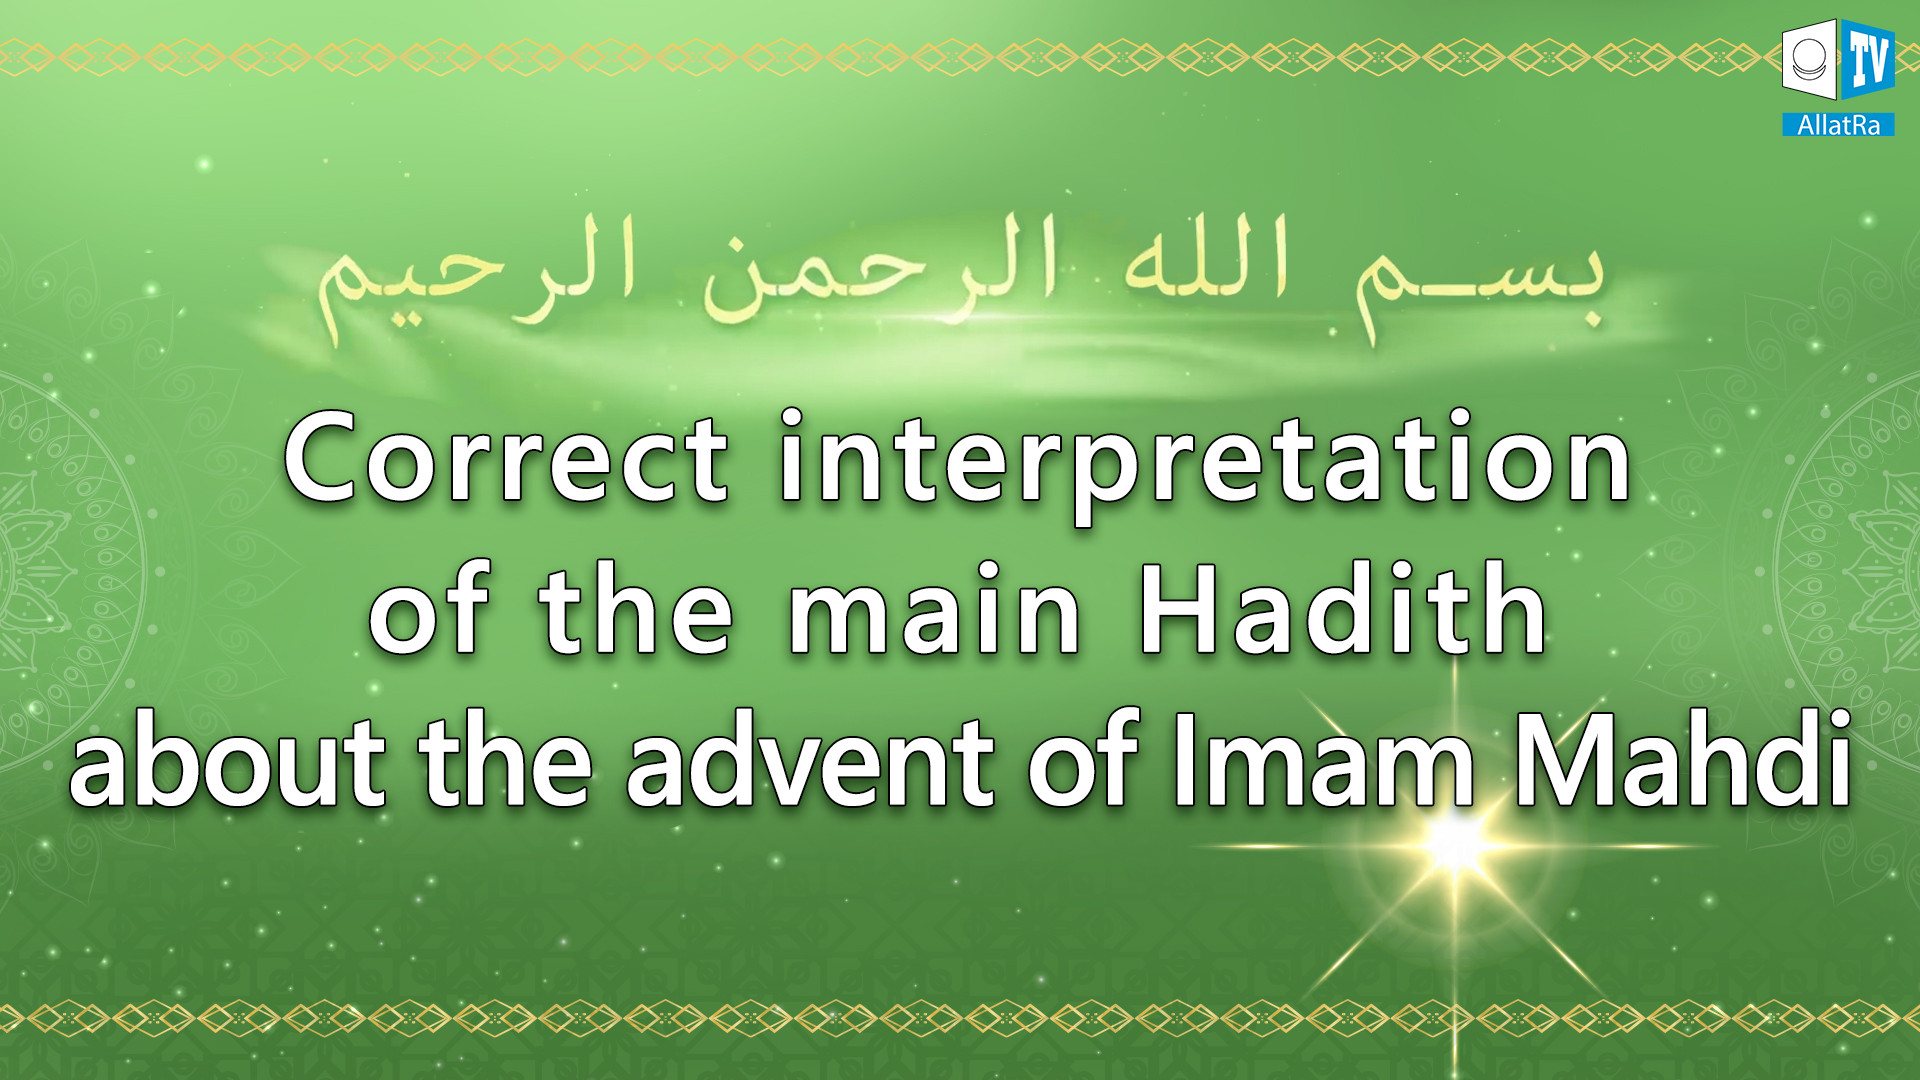 Correct interpretation of the main Hadith about the advent of Imam Mahdi